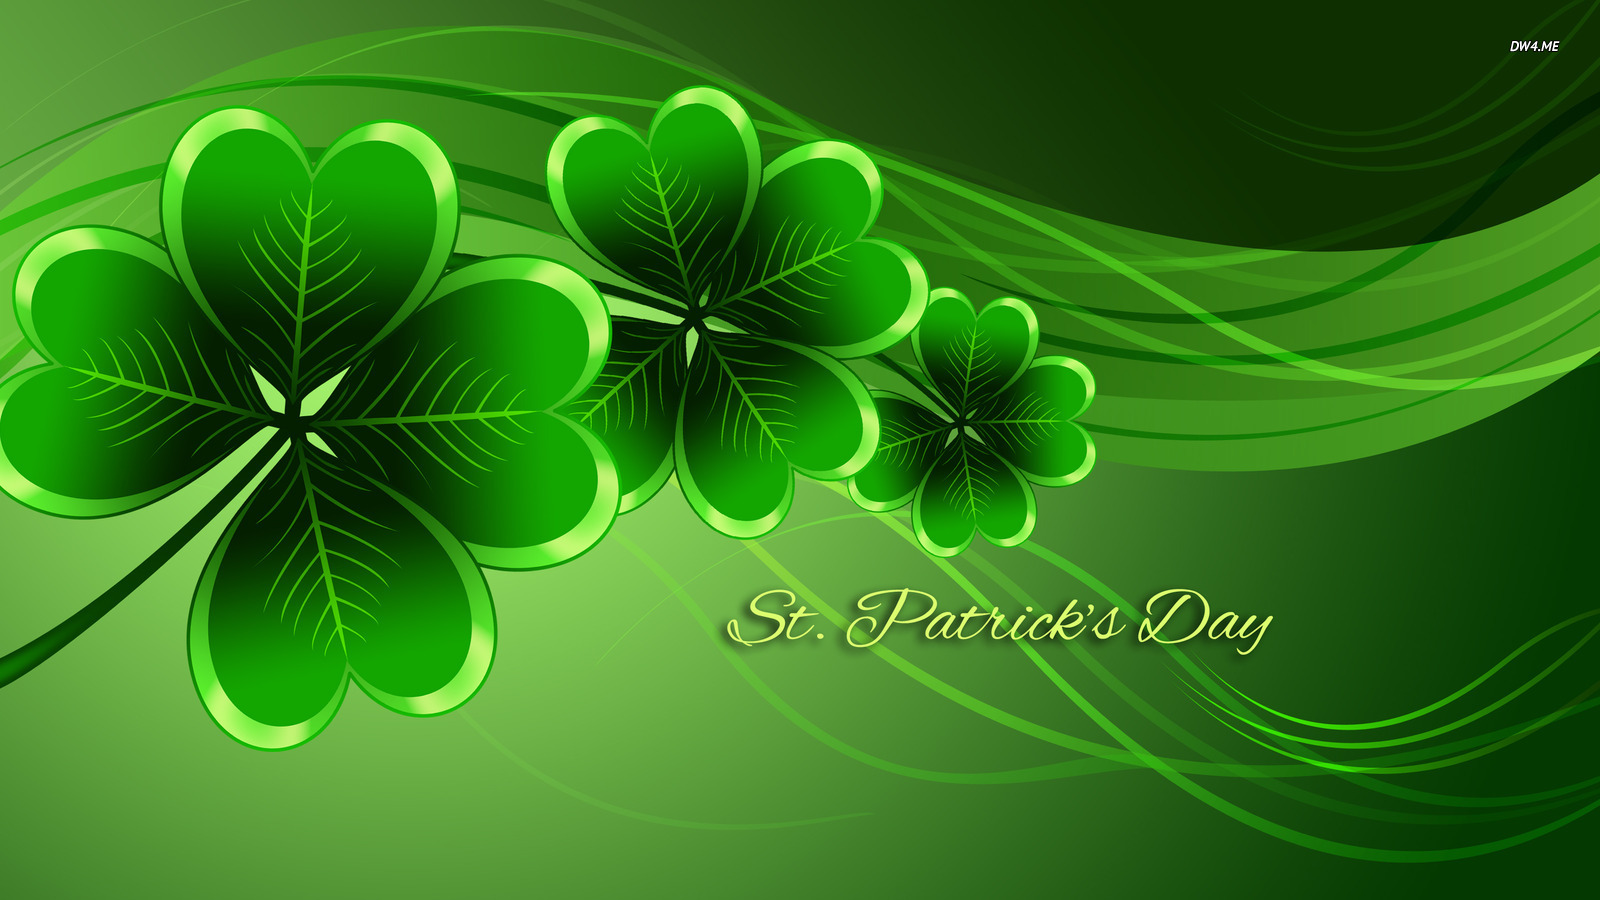 Free Download Saint Patricks Day Wallpaper 1600x900 For Your